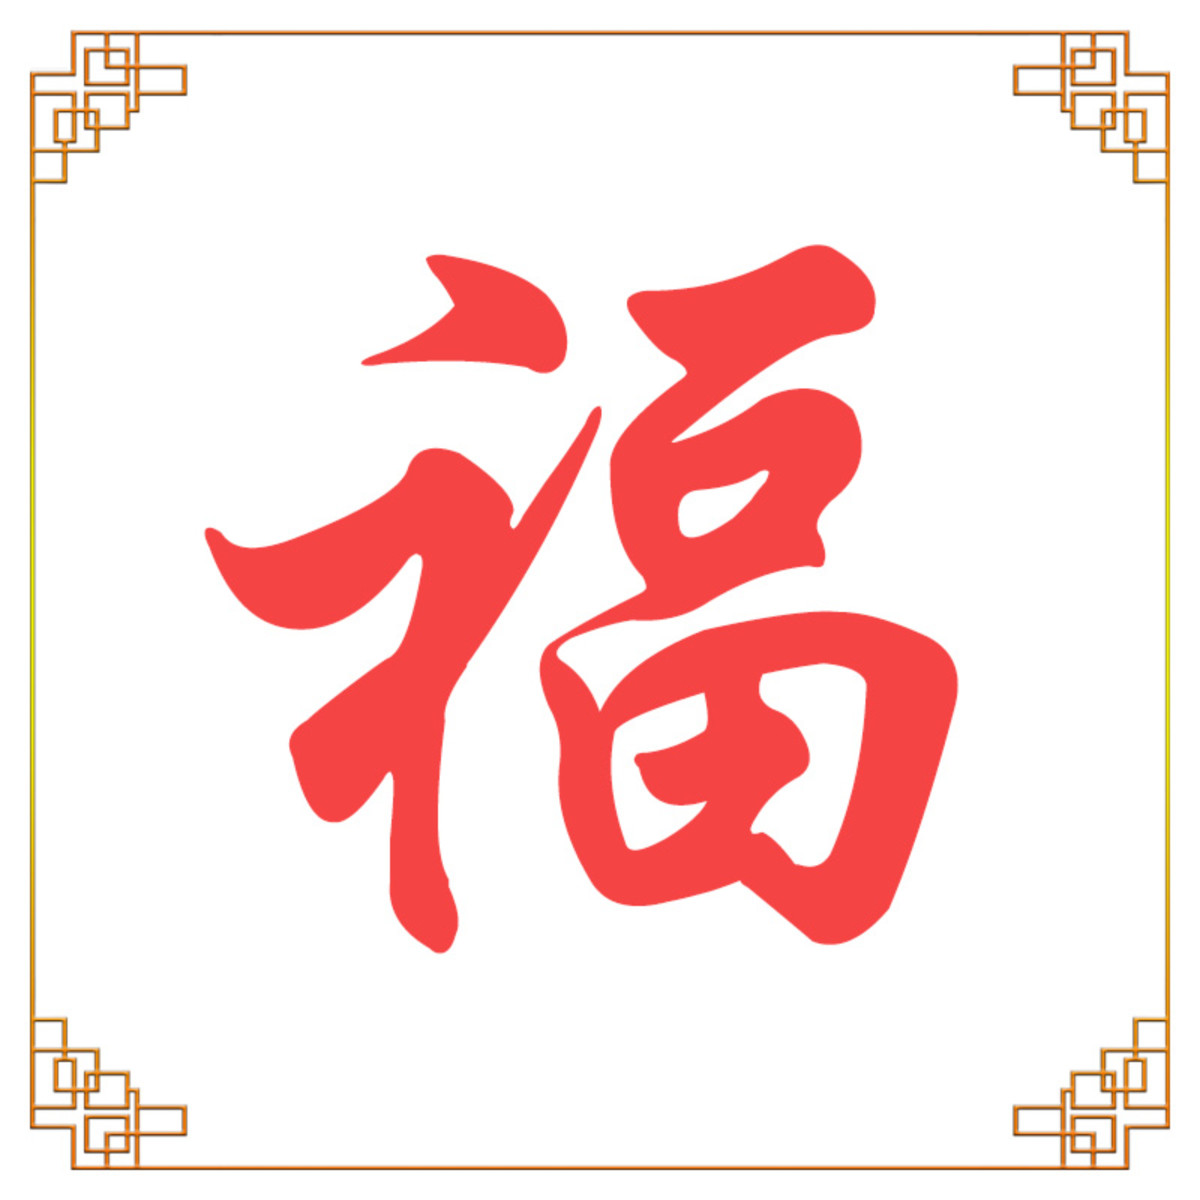 Fu is the Chinese character / symbol for blessings. You will likely see this everywhere during your China vacation.